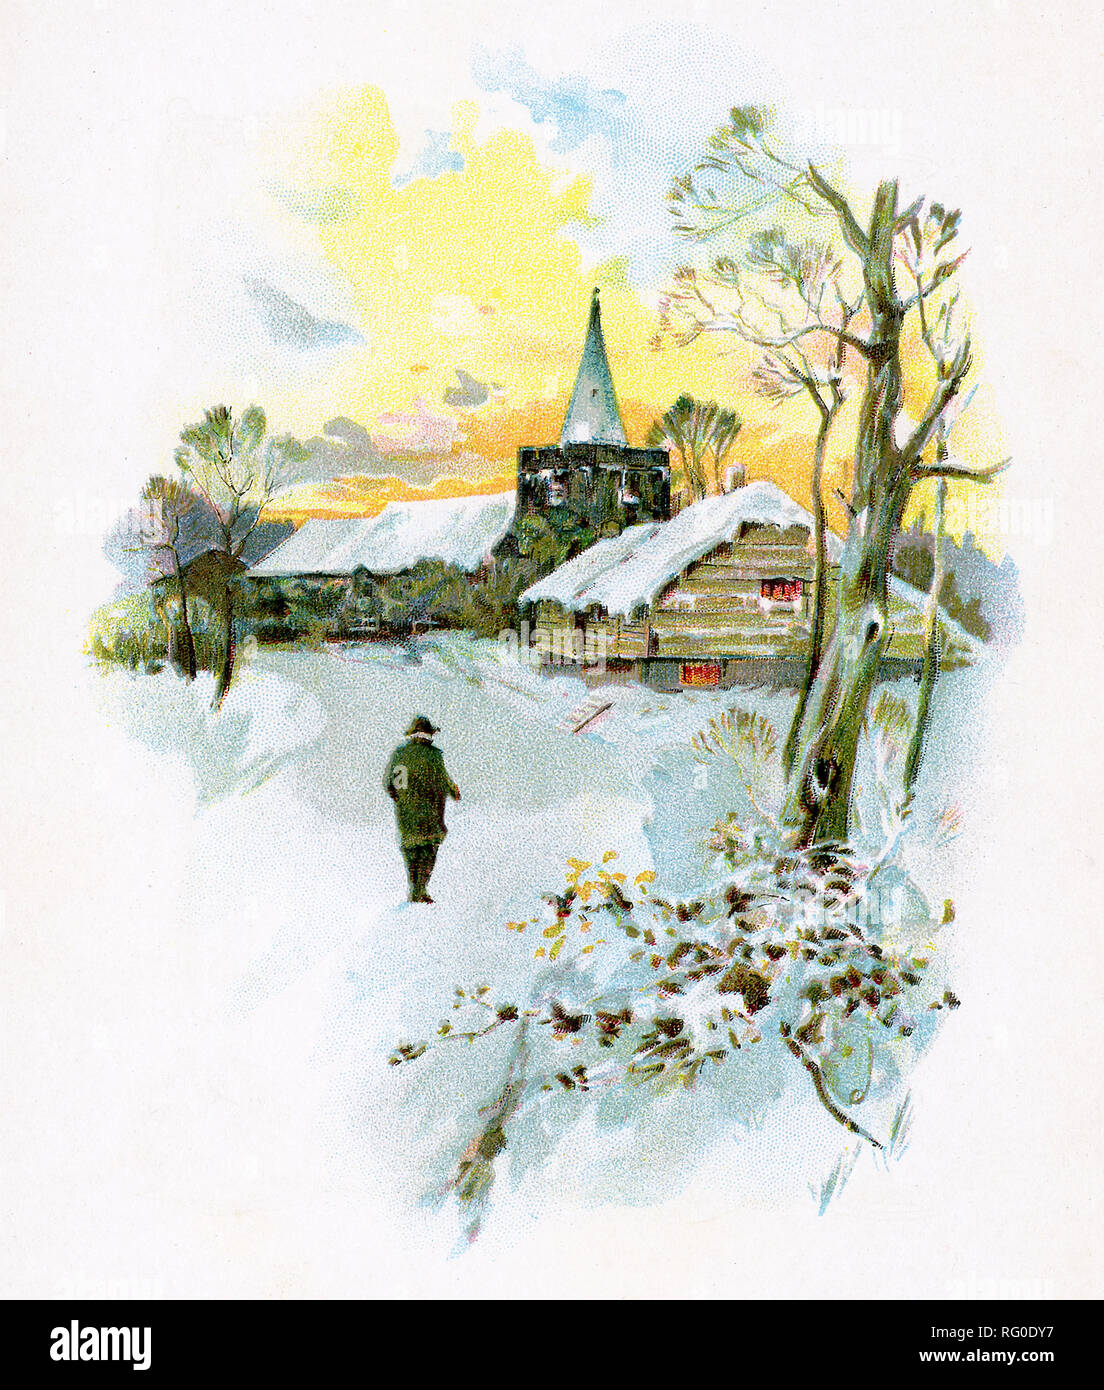 This winter scene accompanied text by Episcopalian minister Phillips Brooks in his book titled Brilliants. - Stock Image